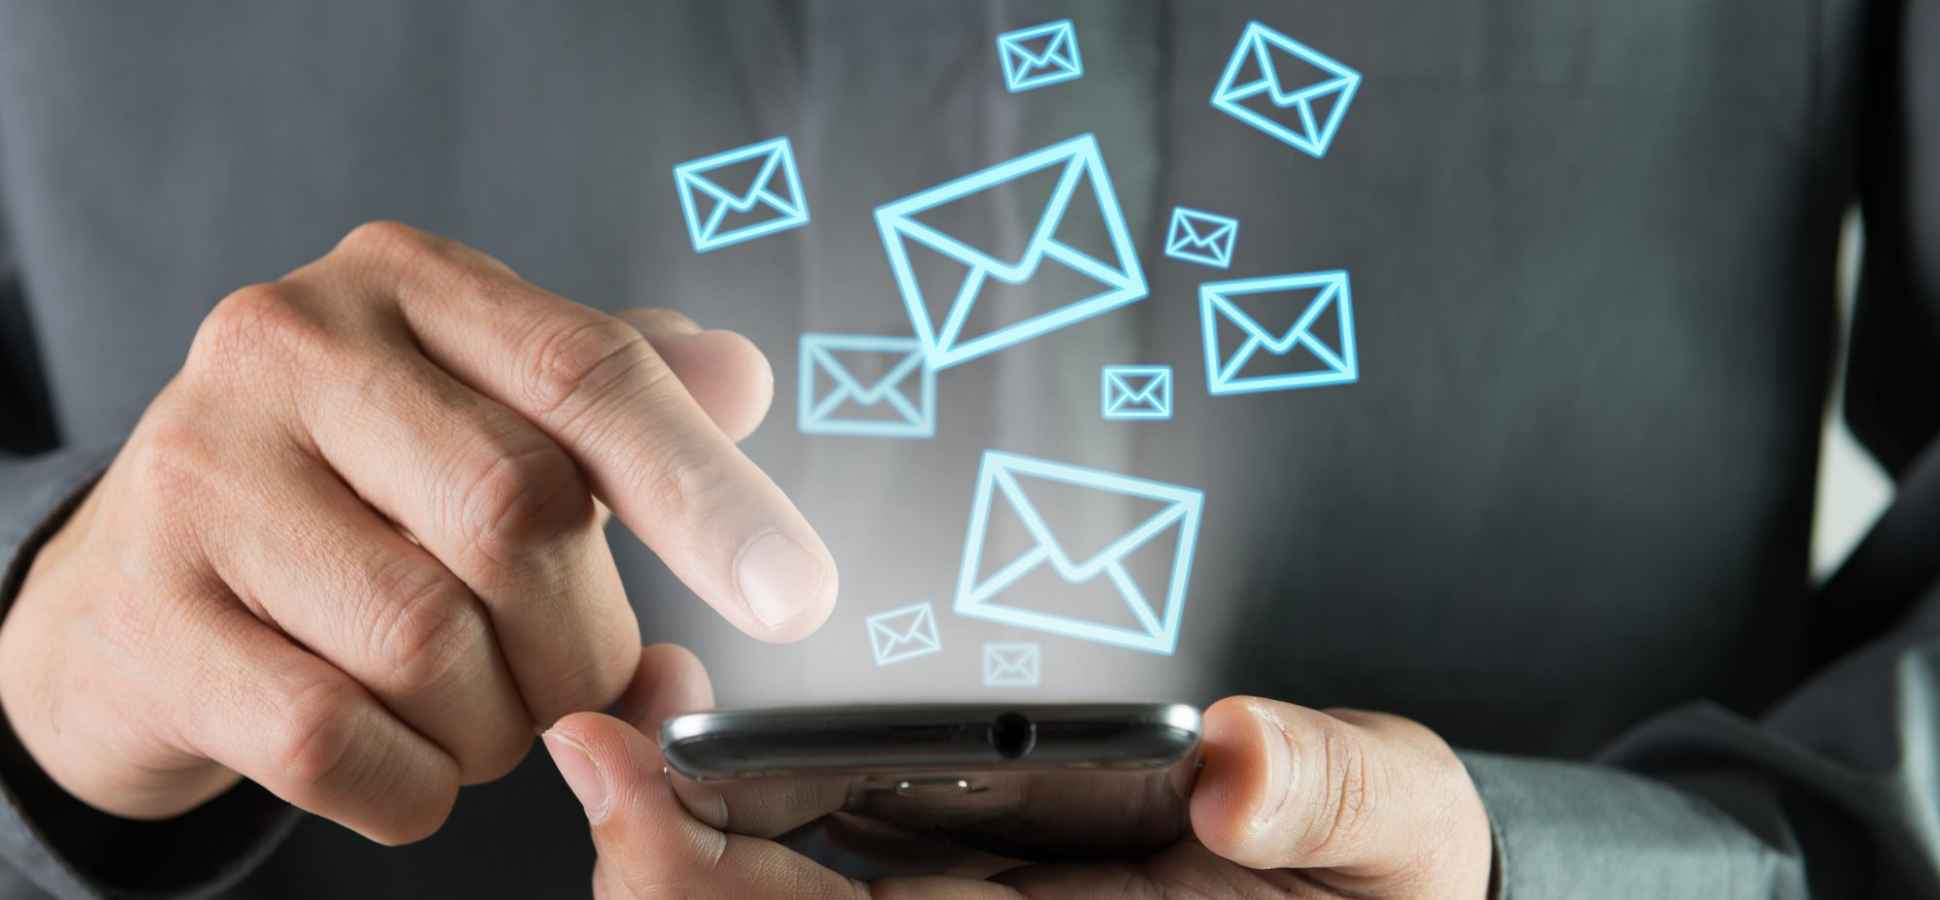 11 Strategies for Getting Social Media Fans Onto Your Email Lists